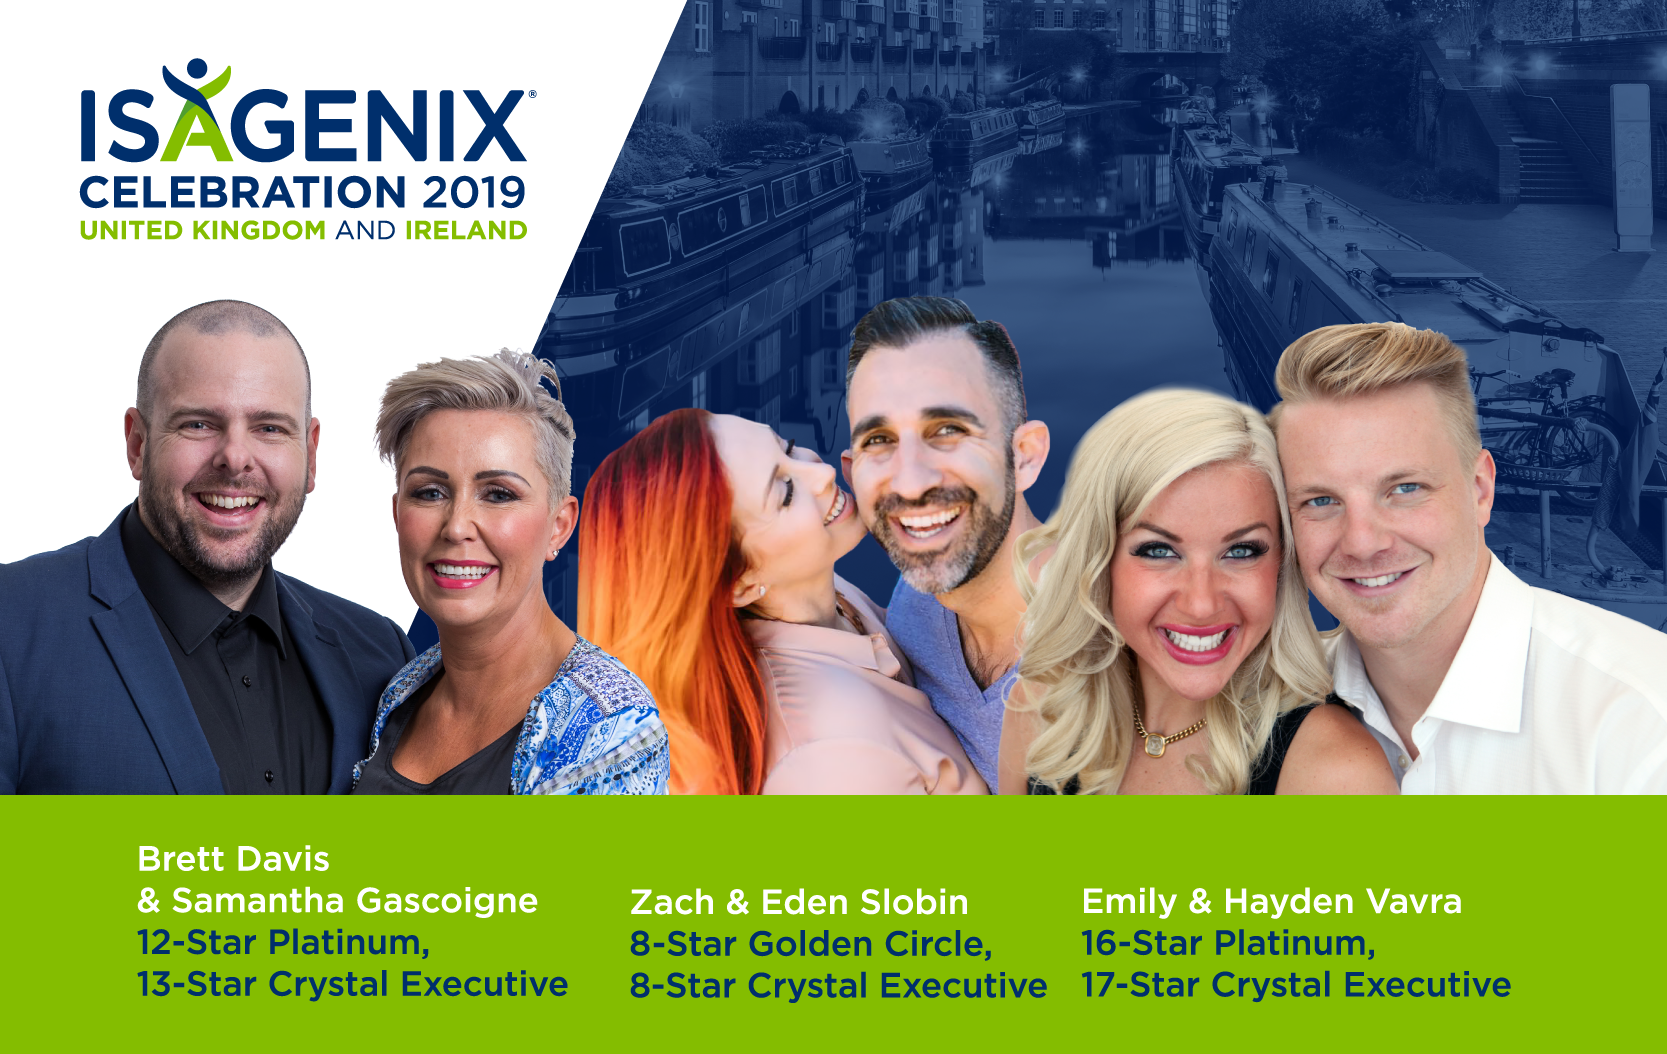 UK Ireland Isagenix Celebration Speakers